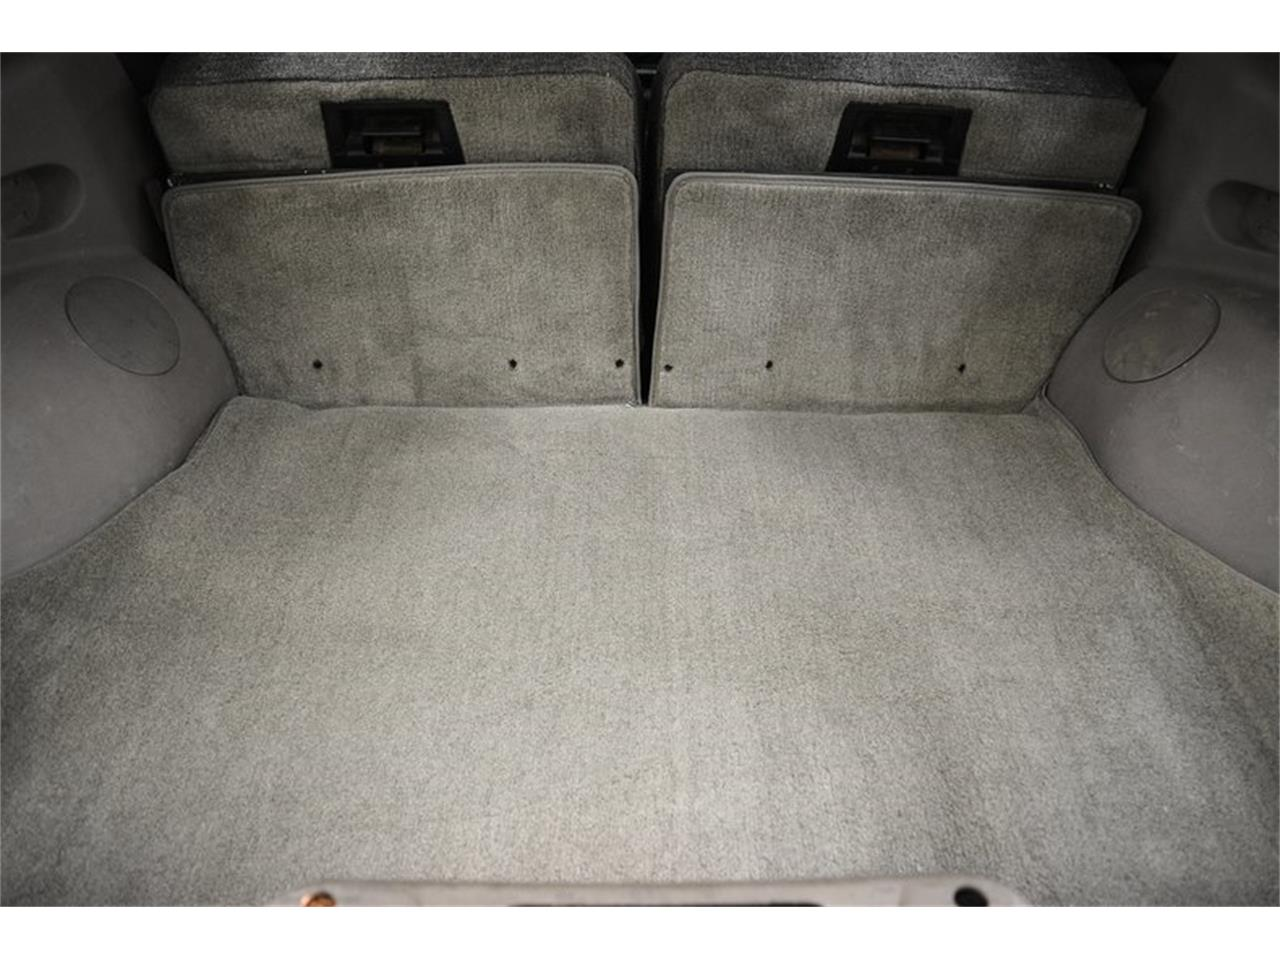 Large Picture of '91 Ford Mustang - $14,999.00 Offered by Classic Car Liquidators - PNVK